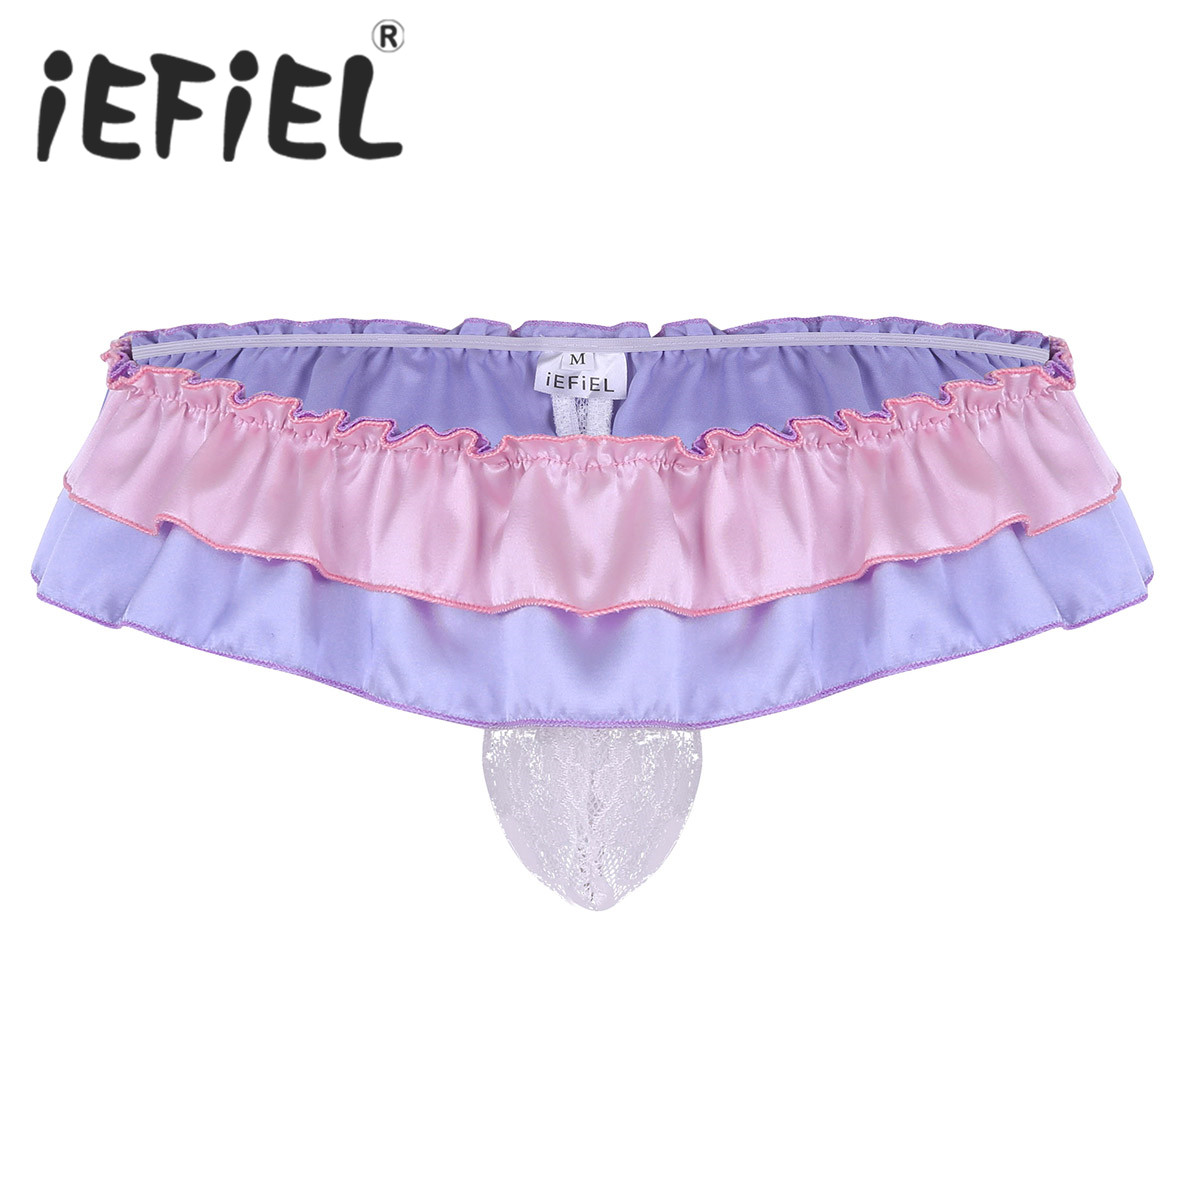 Sexy Men Lingerie See Through Floral Lace Bulge Pouch Ruffled Low Rise Sissy Bikini G-string Thong Gay Male Underwear Underpants